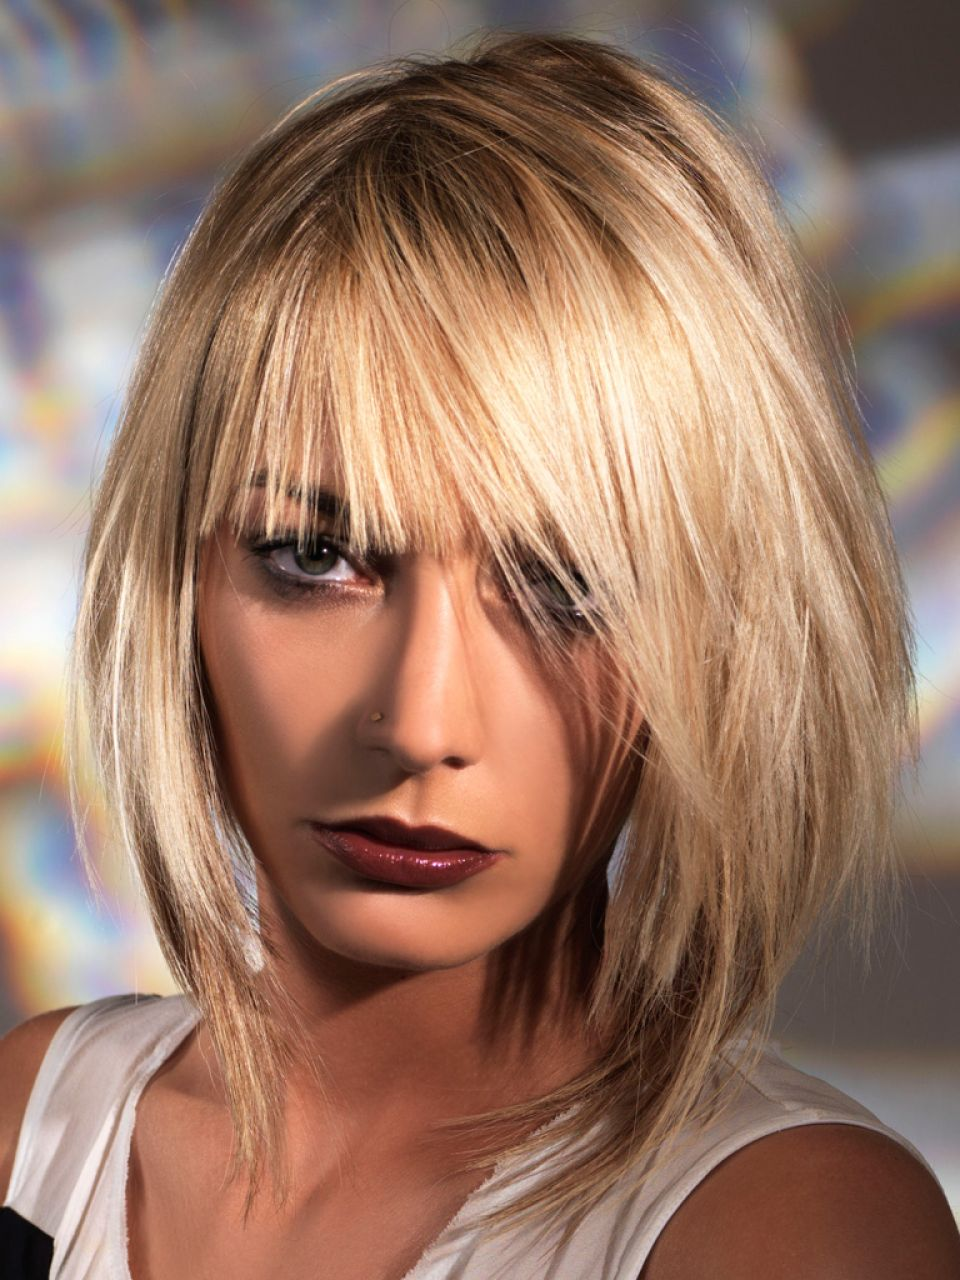 unsere top 20 blonde damenfrisuren